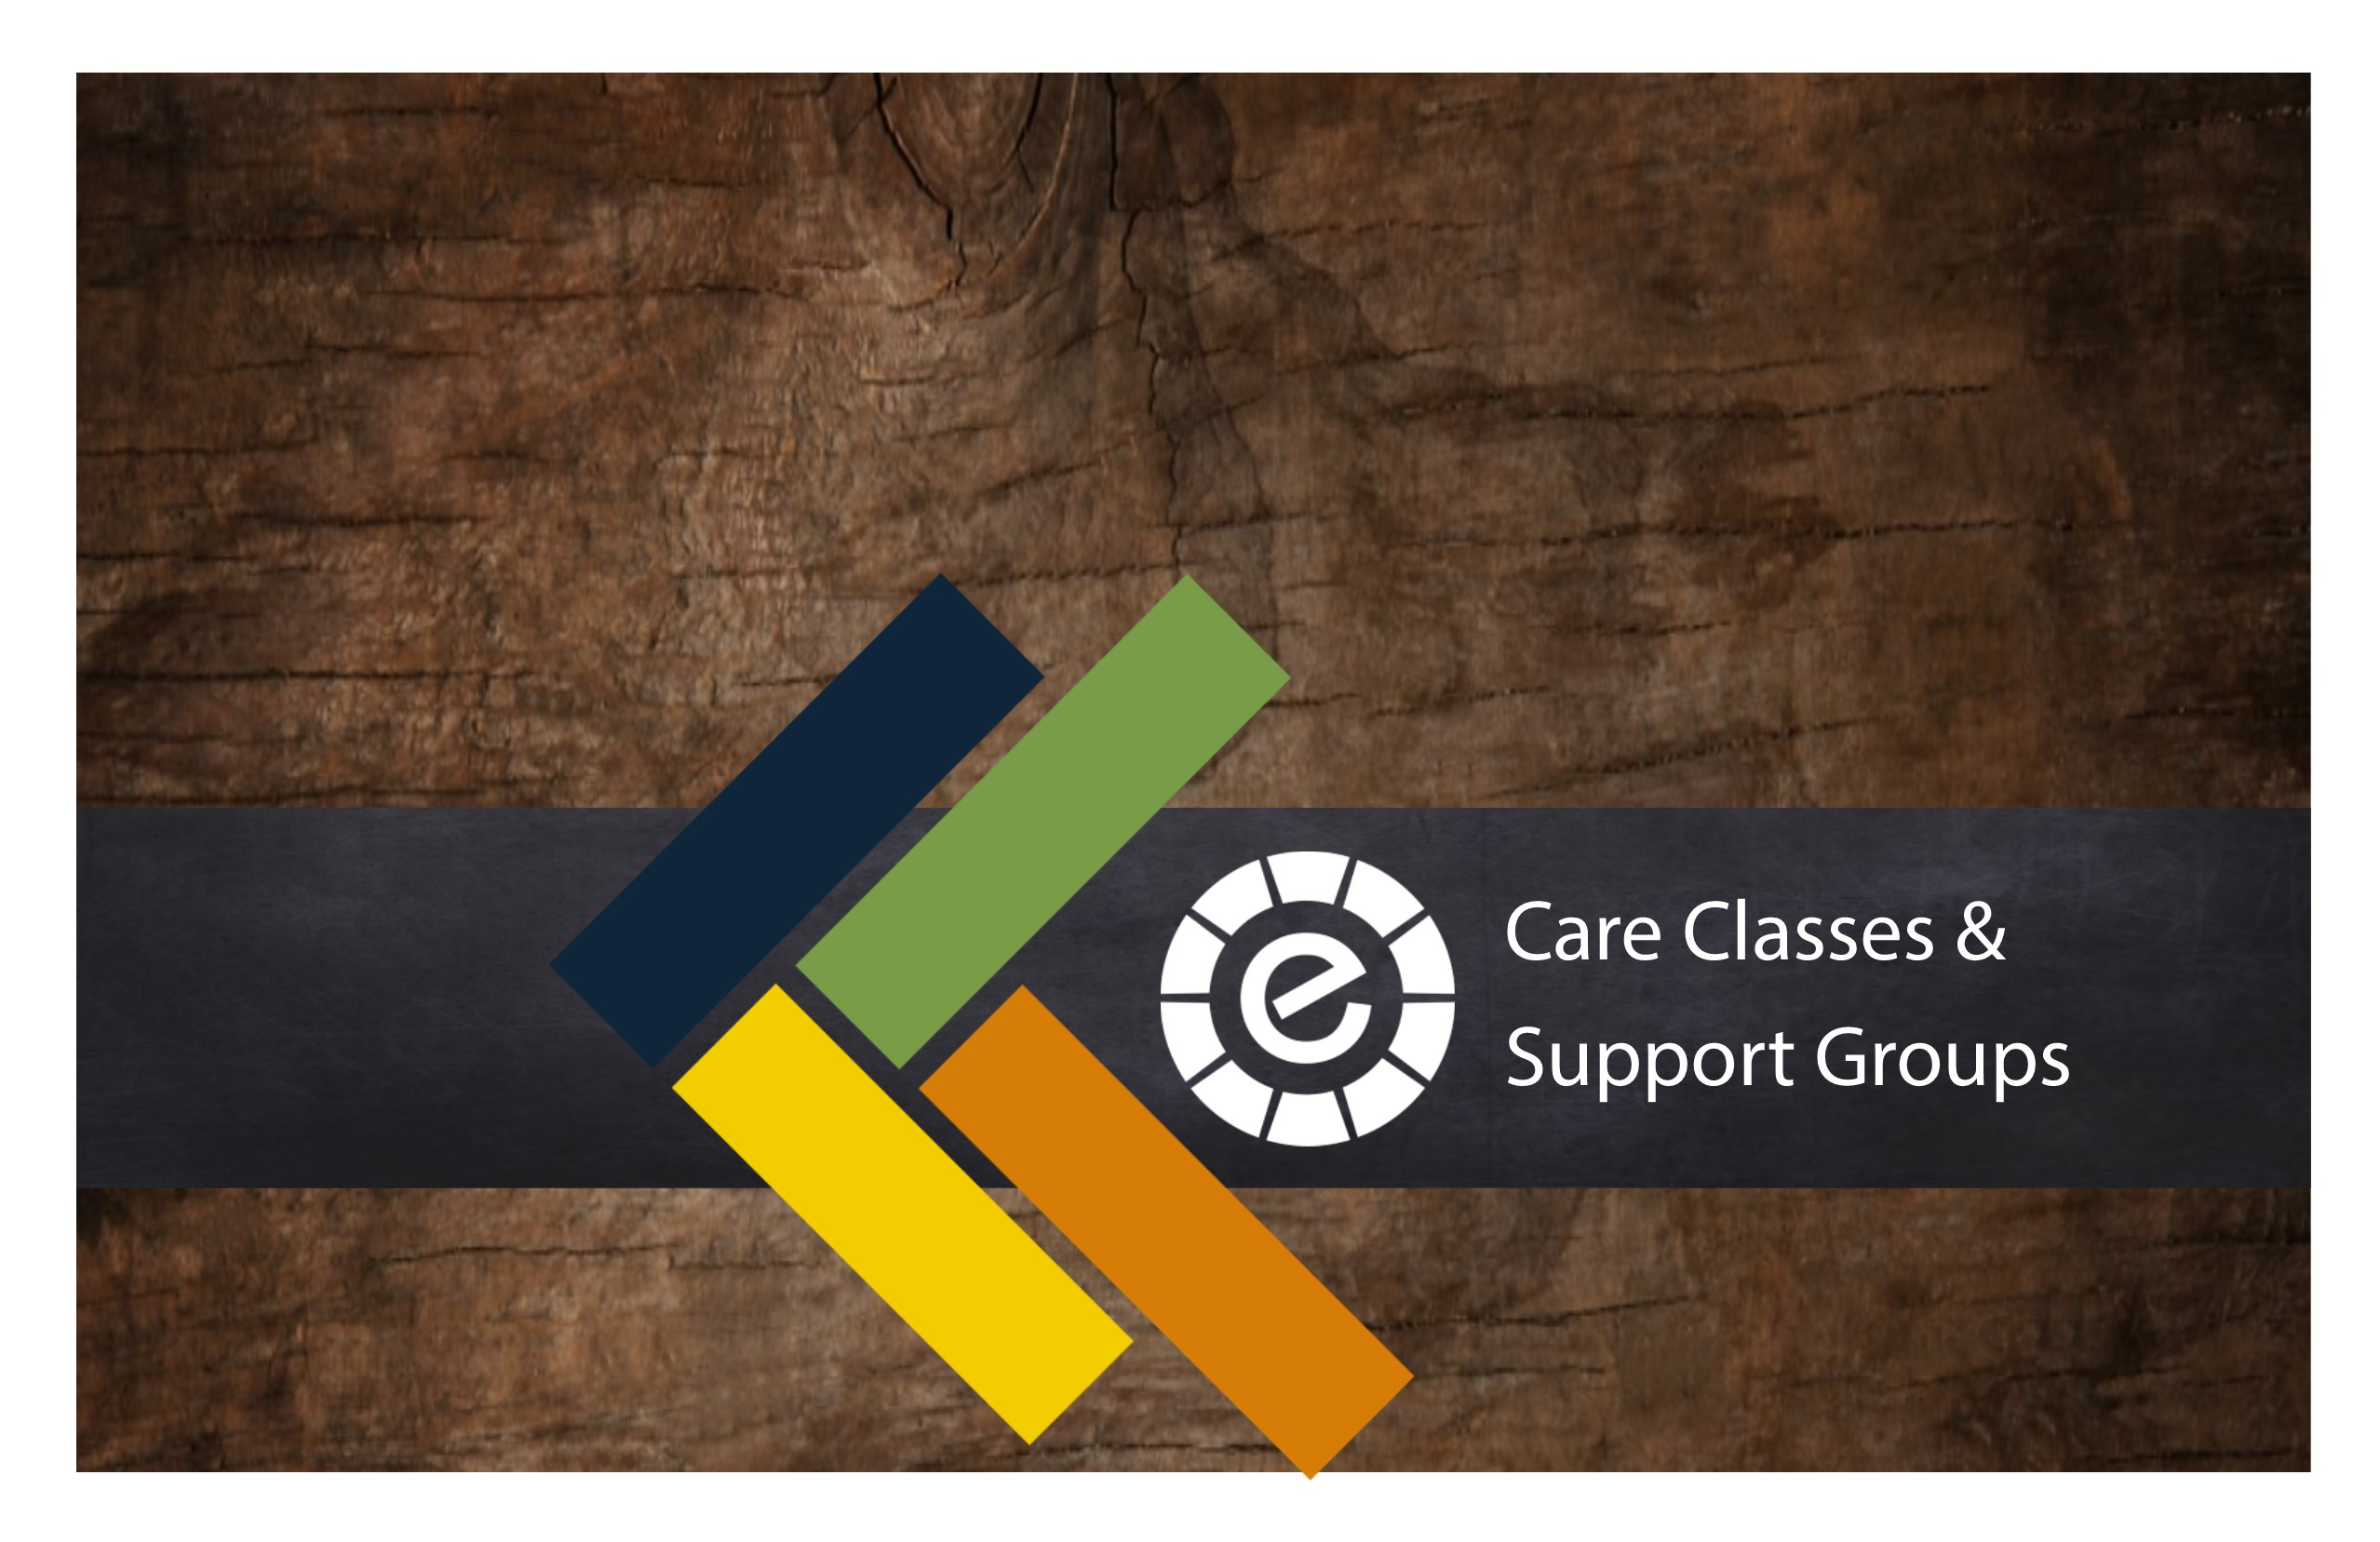 Care classes and support groups